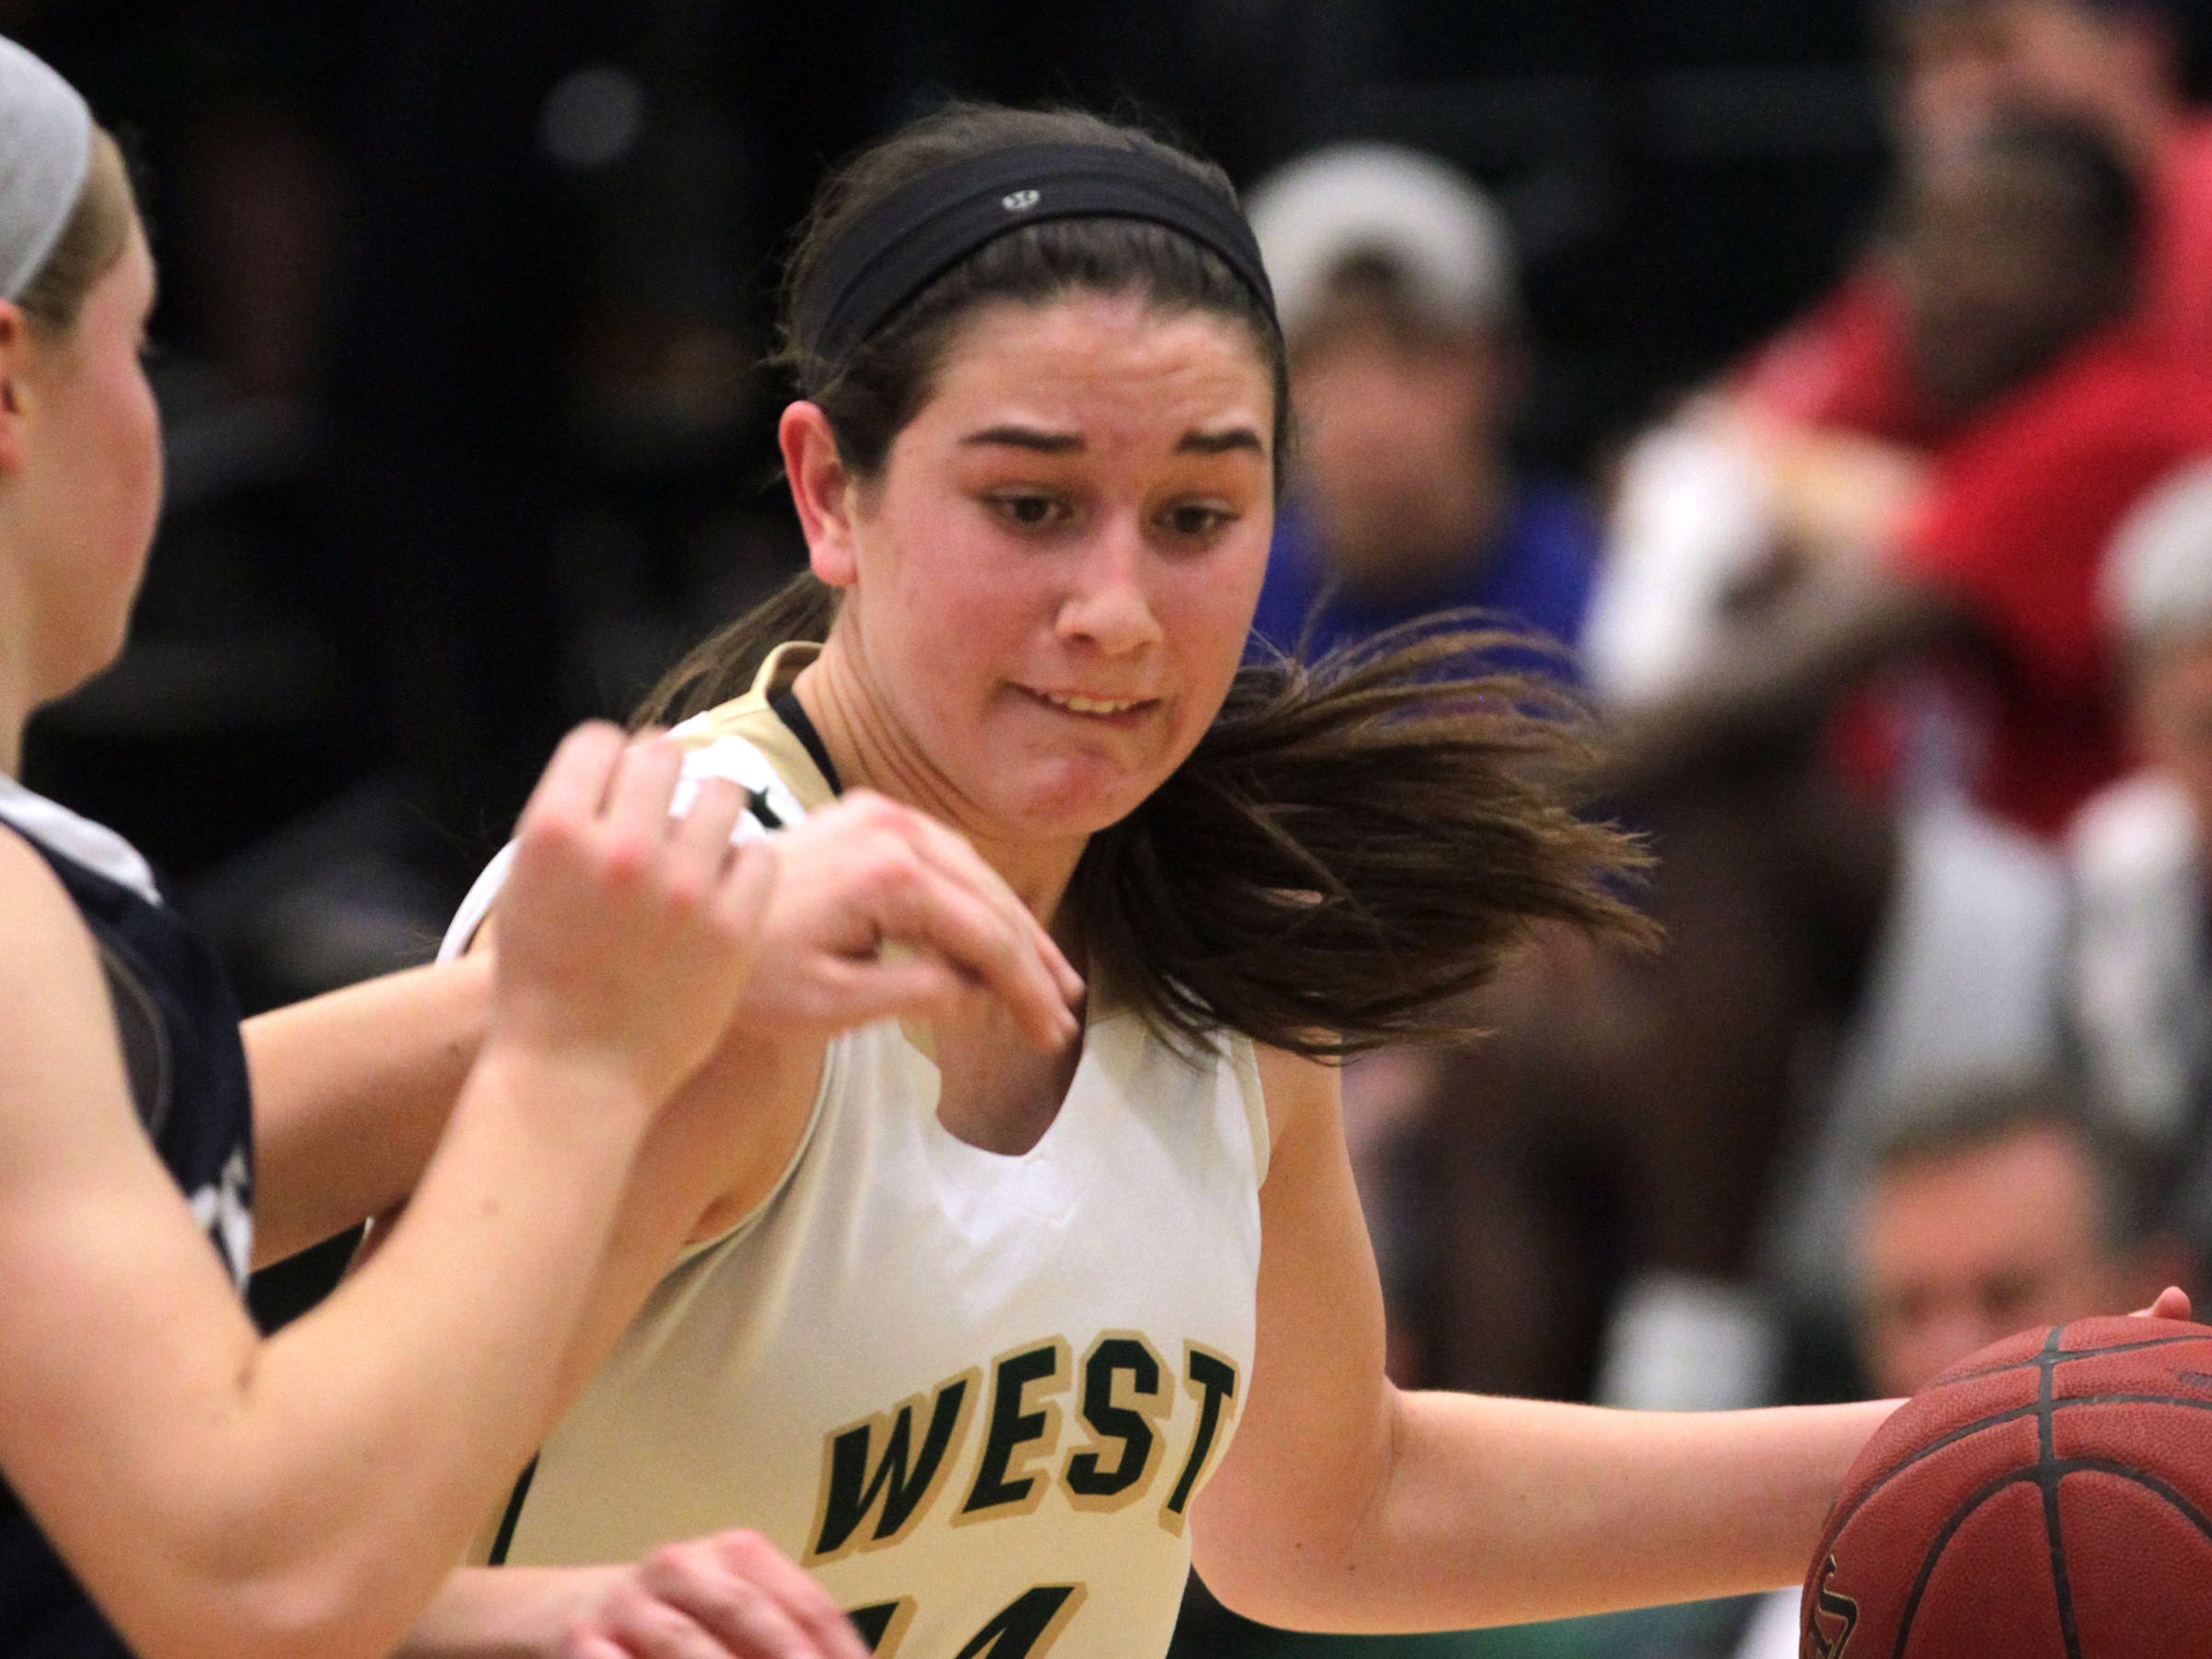 West High's Dani Craig drives to the hoop during the Women of Troy's Class 5A regional final against Pleasant Valley on Tuesday, Feb. 24, 2015. West High won, 45-27, to advance to the state tournament. David Scrivner / Iowa City Press-Citizen